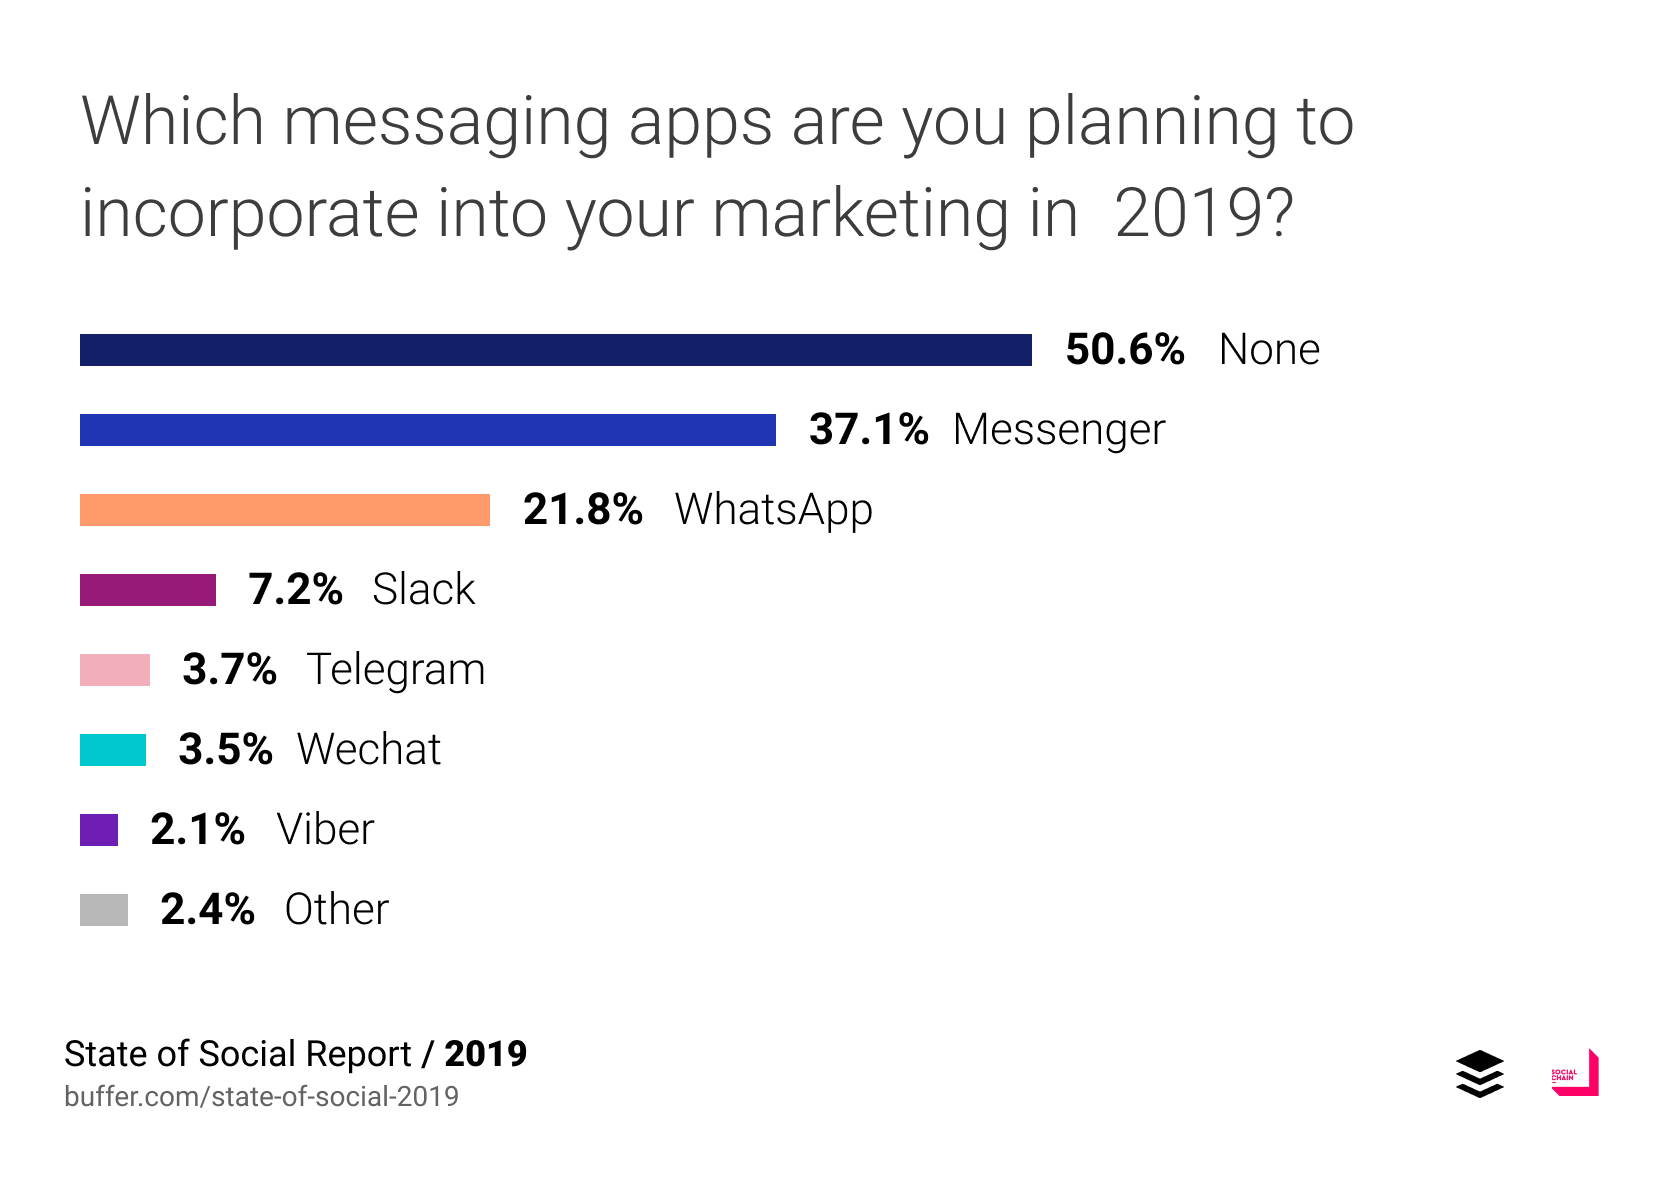 Which messaging apps are you planning to incoporate into your marketing in 2019?